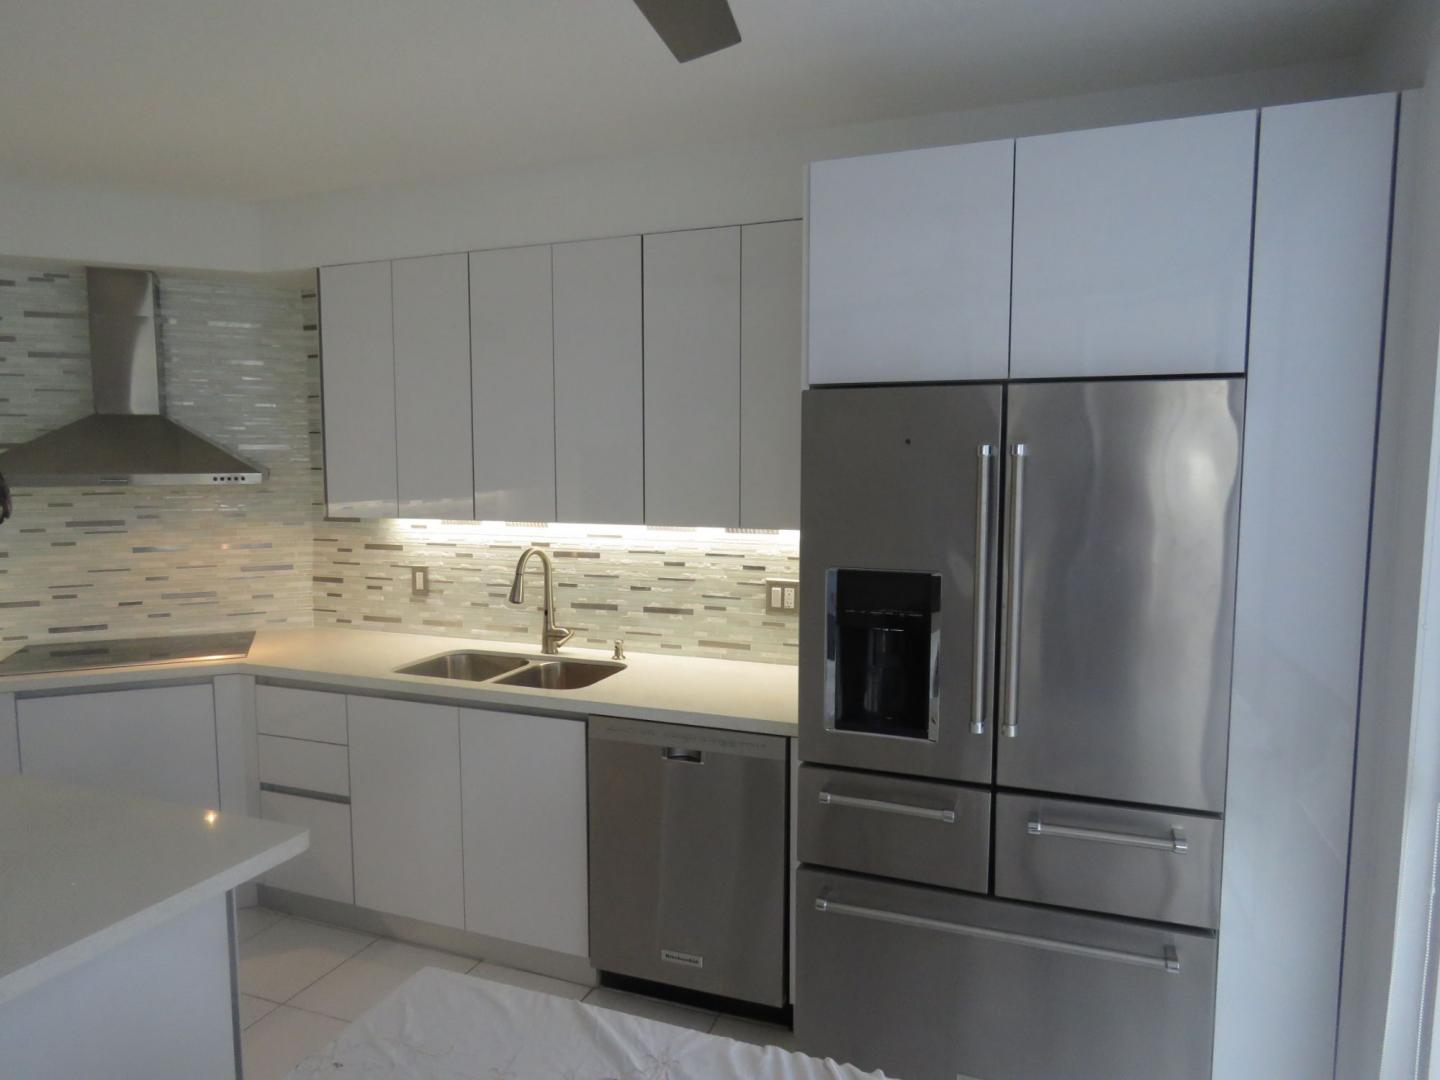 Kitchens Cabinets Manufacturer South Florida Kendall Miami Forever Kitchen Florida Custom Bathroom Vanities Custom Wall Units